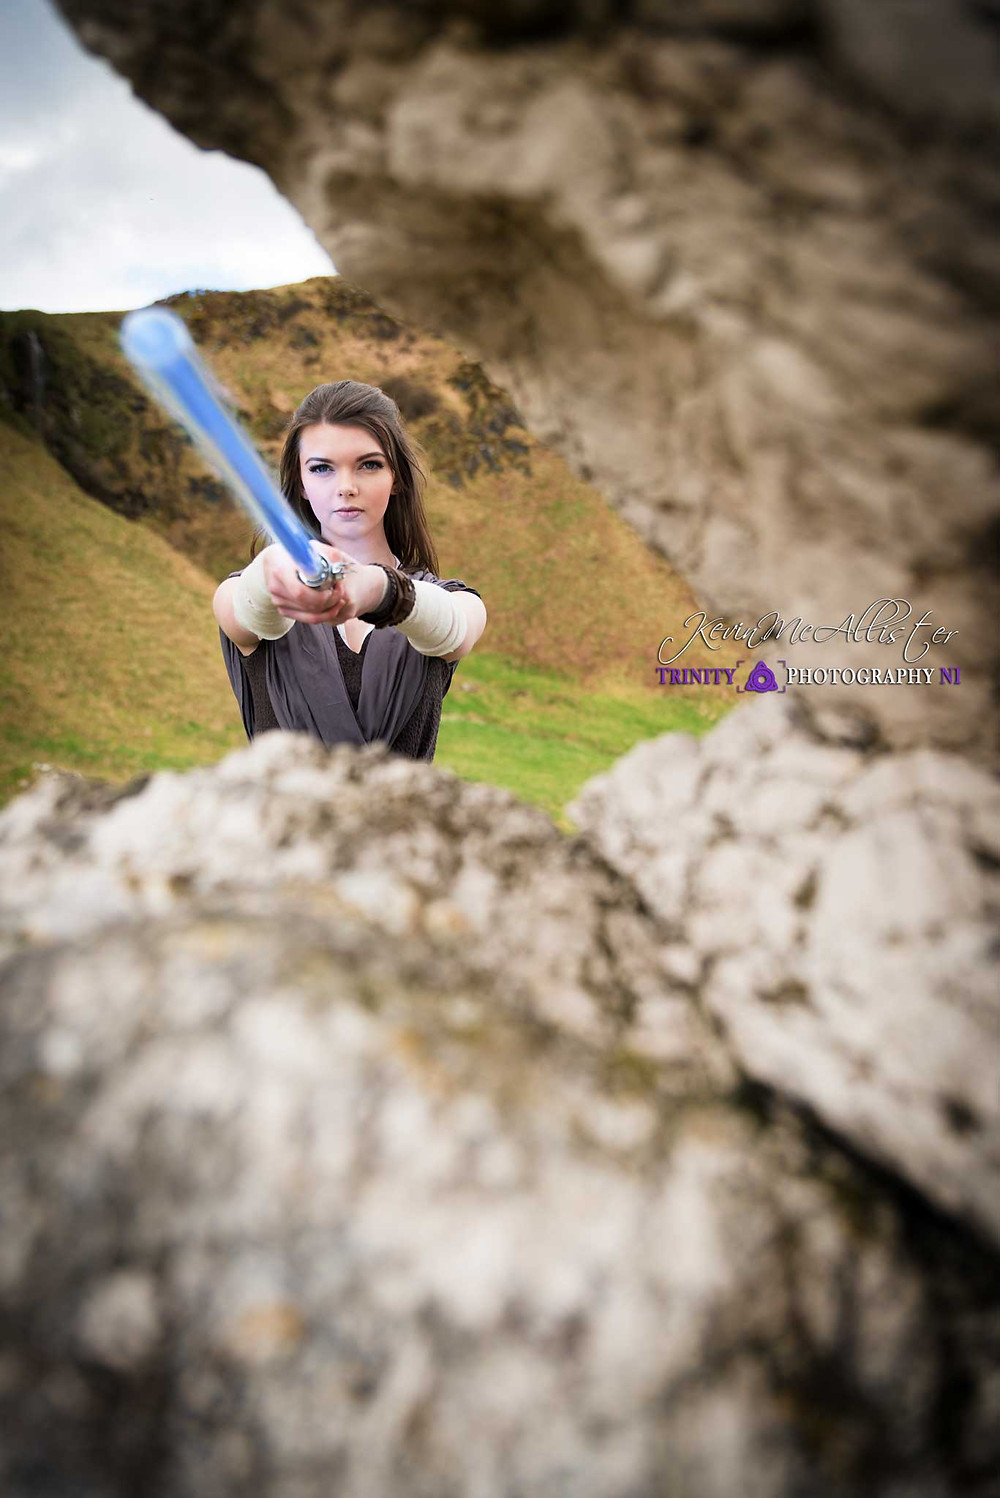 recreating the scene from starwars the last jedi, cosplayer as rey north coast of ireland